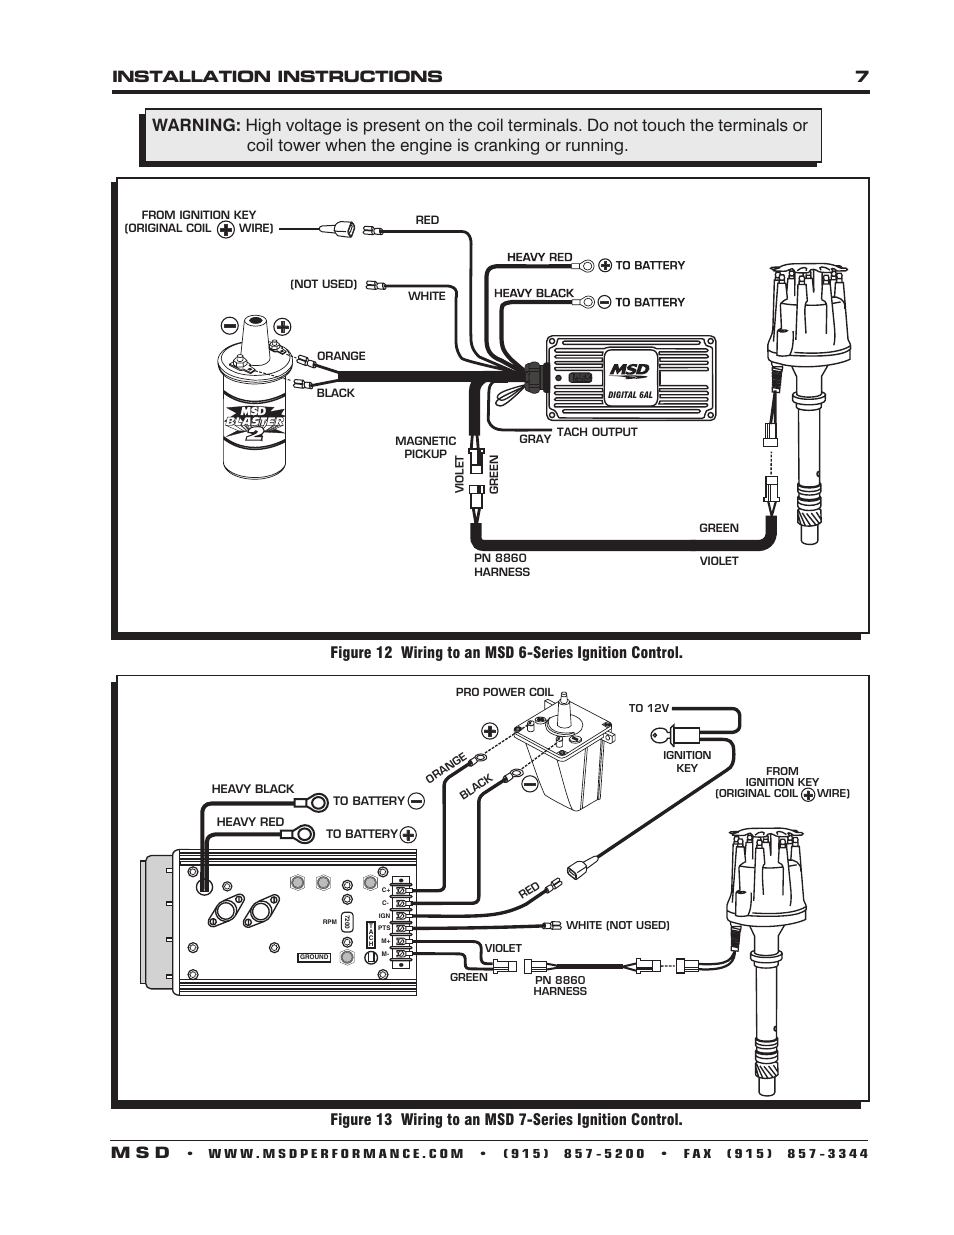 msd 6al 2 wiring diagram vdo gauges diagrams oil pressure sender installation instructions 7 m s d | 85501 chevy v8 pro-billet distributor user ...